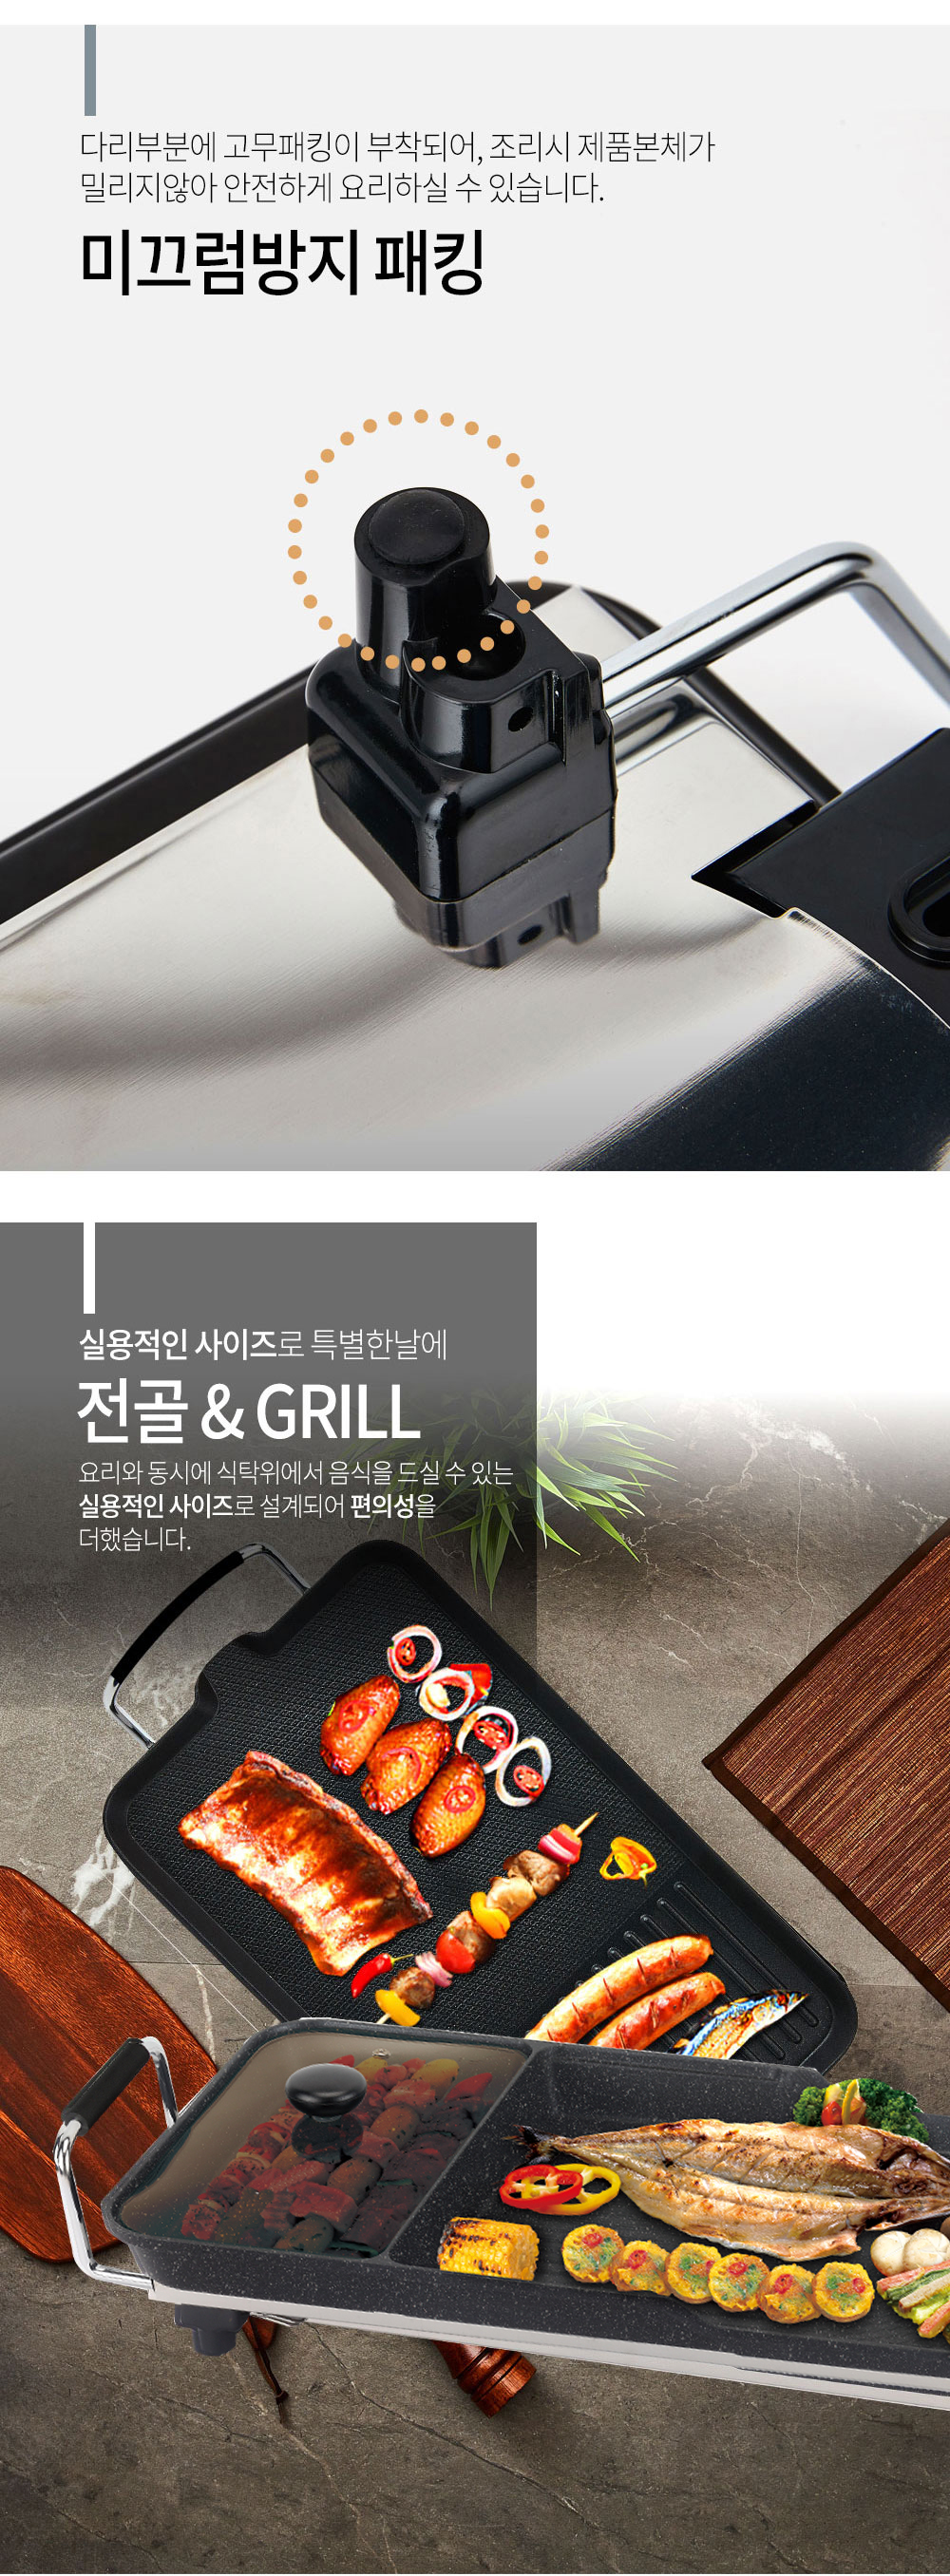 grill_plus_detail page_7.jpg